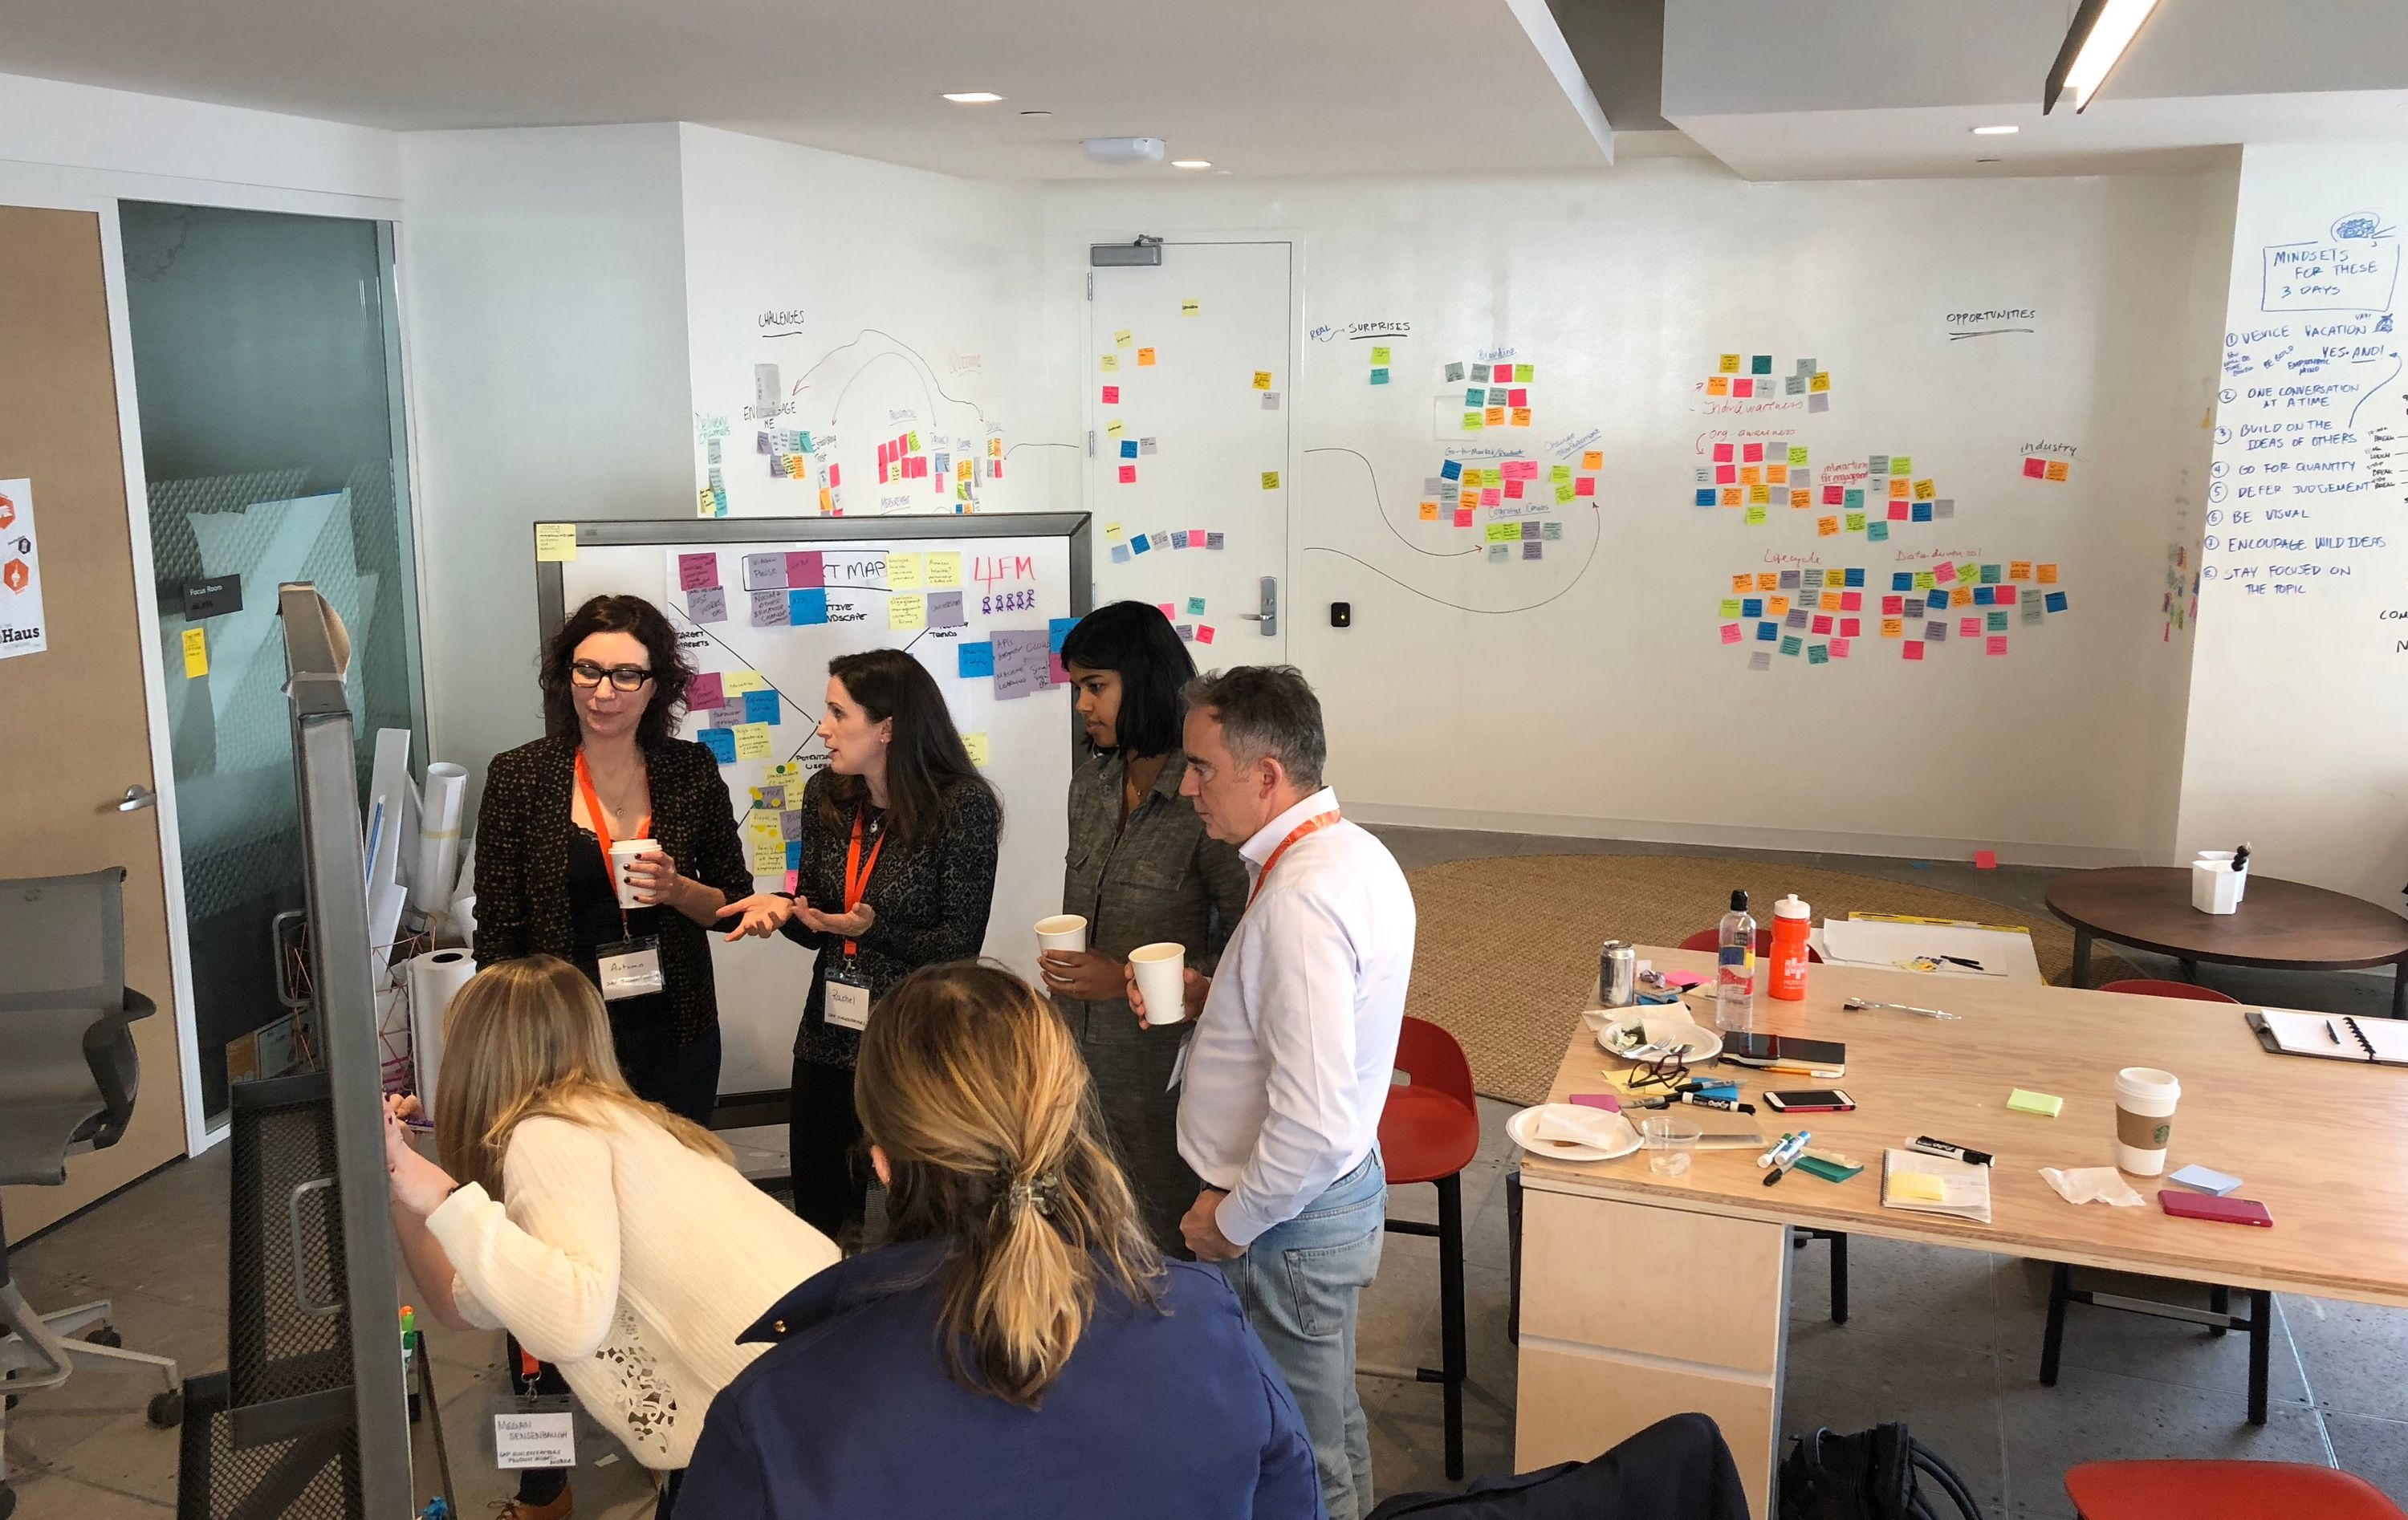 Workshopping concepts with stakeholders